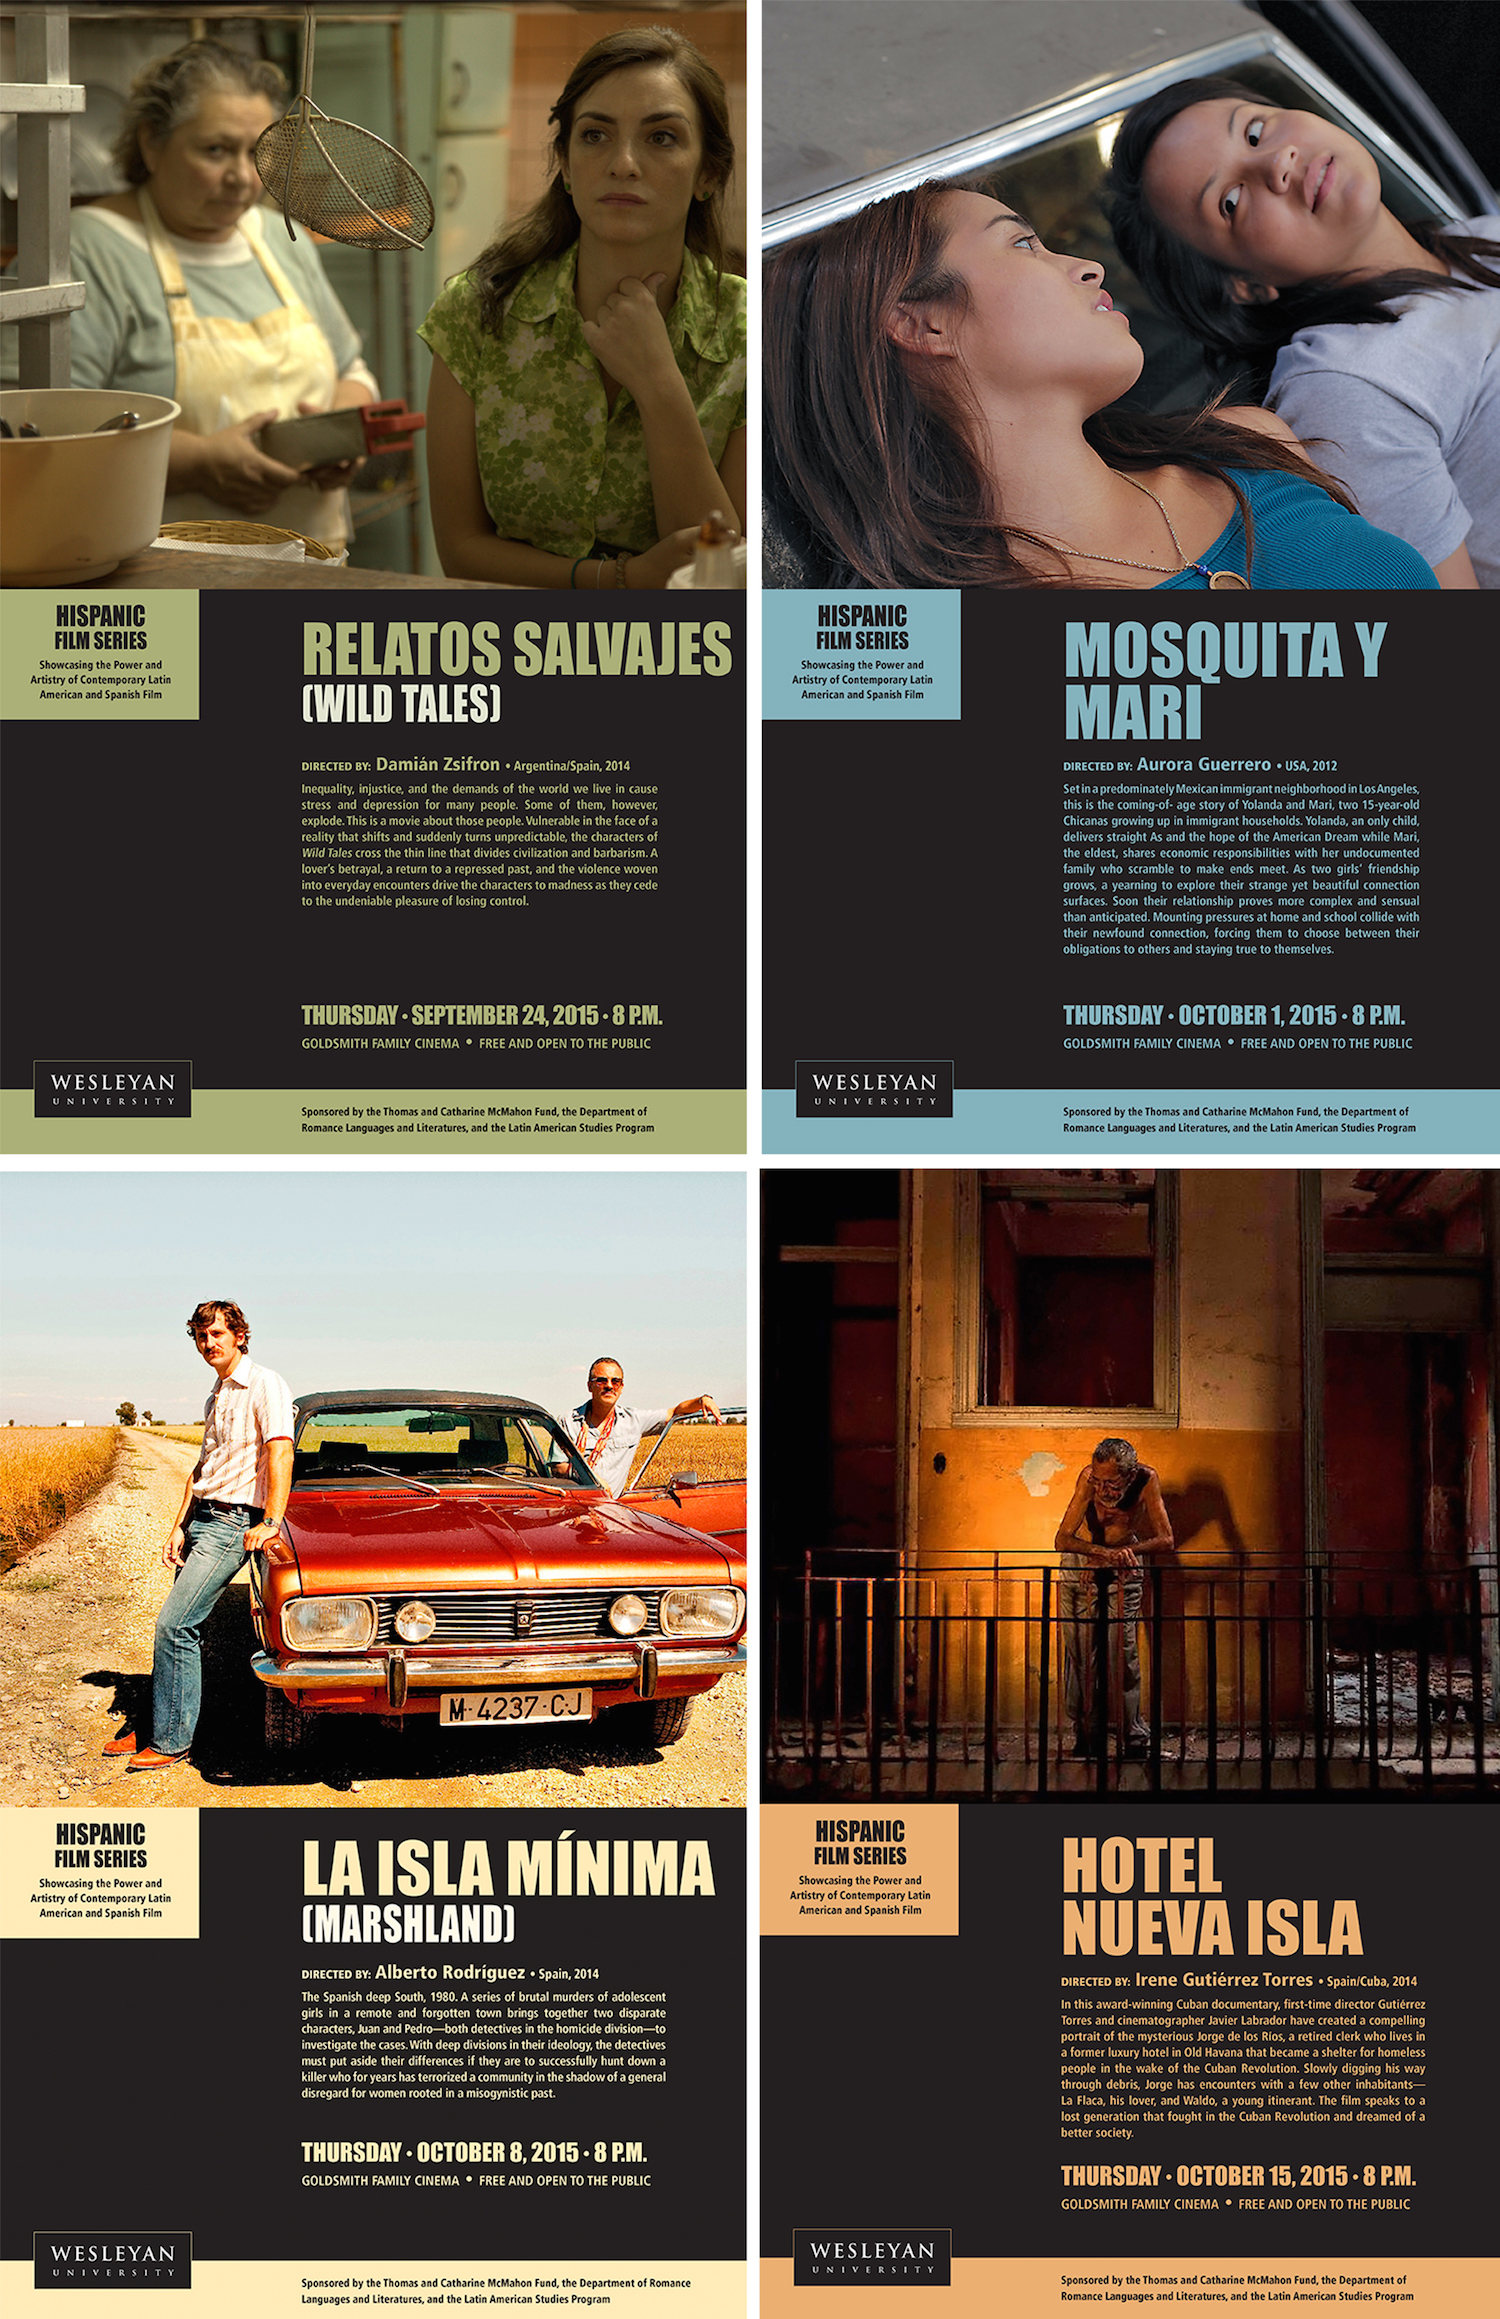 Hispanic Film Graphic